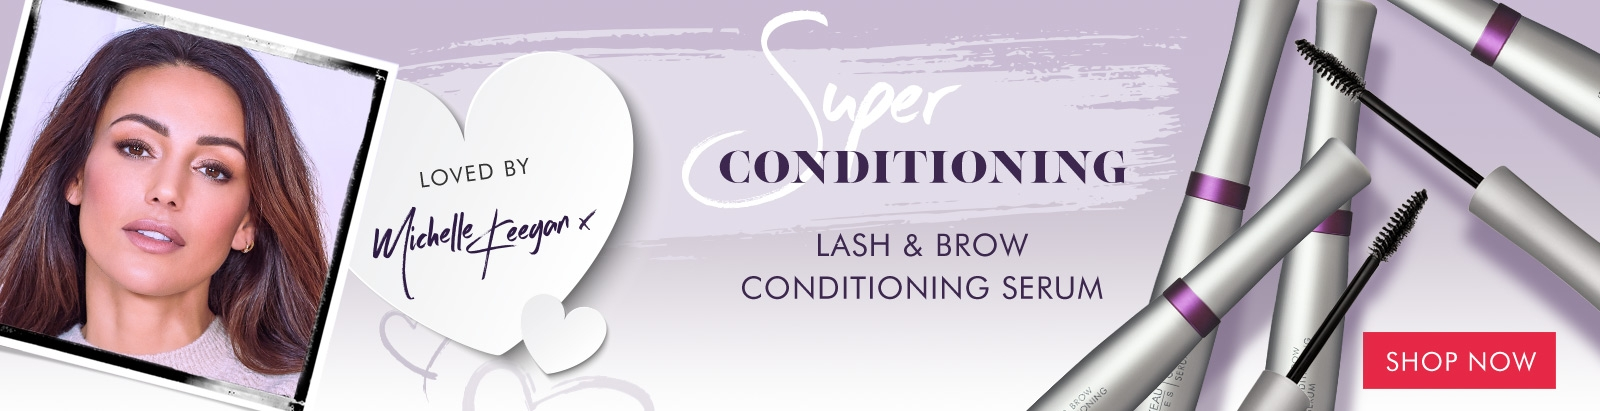 Super-Natural. Lash & Brow Conditioning Serum. Loved by Michelle Keegan.